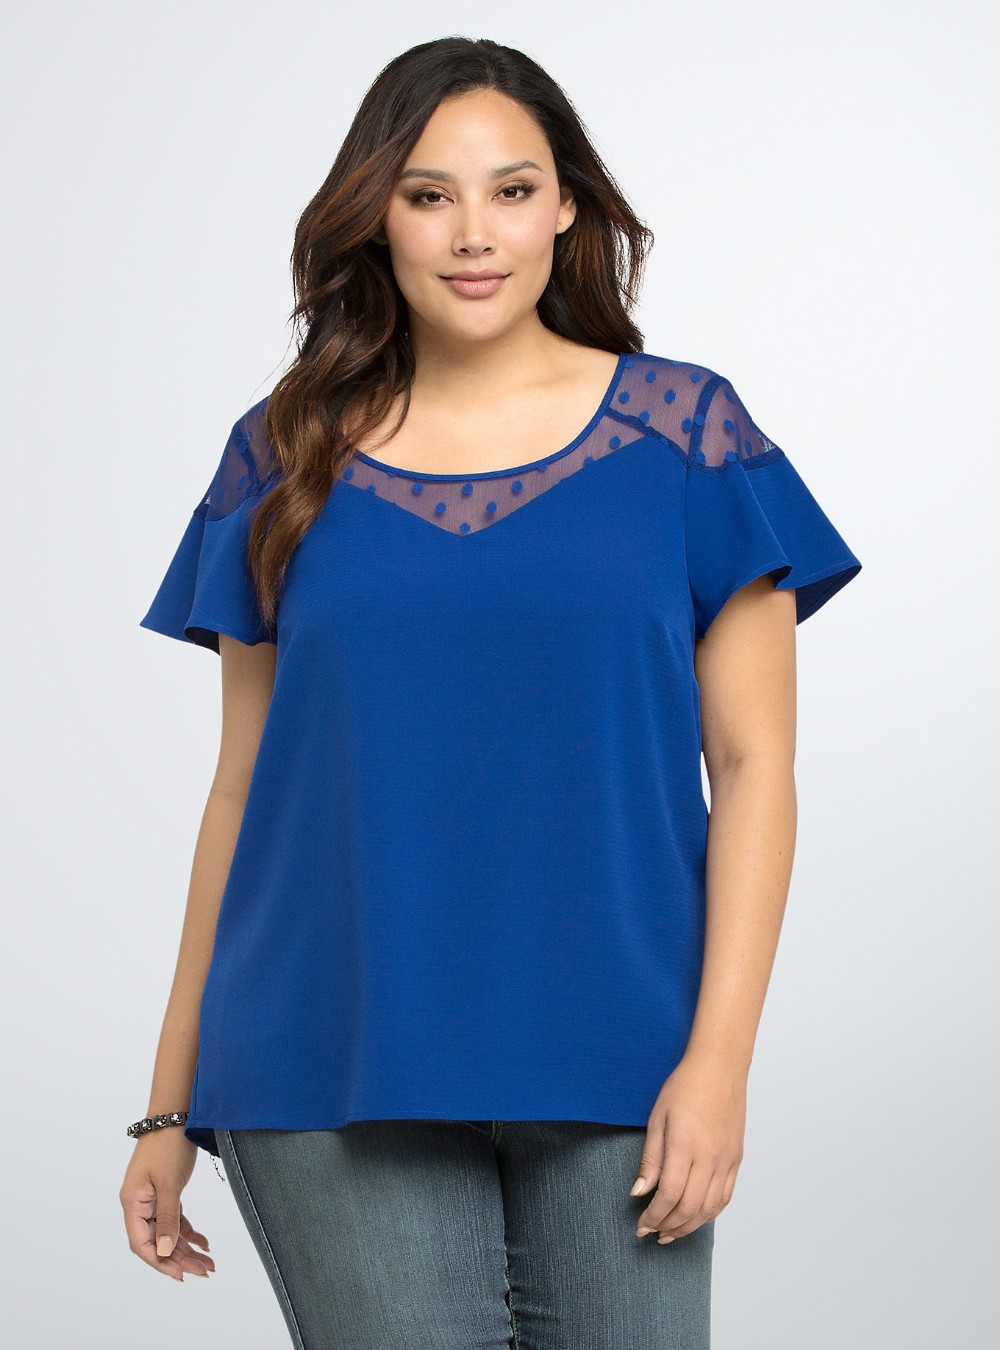 Fantastic Blouses For Women Blue Womenu0026#39;s Polyester Blouse